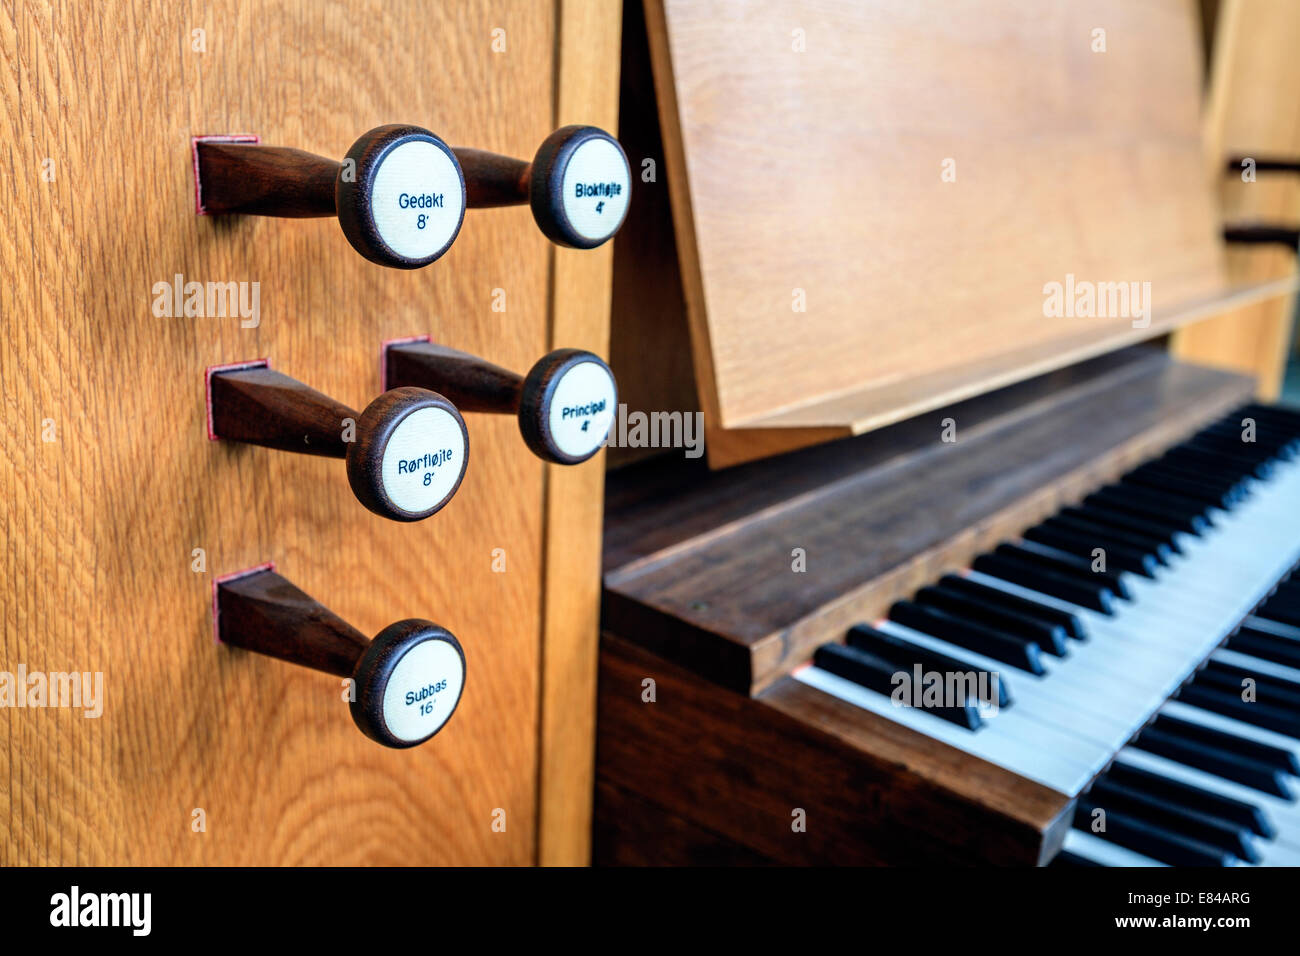 Stops and keyboard of the organ in Hallgrimskirkja church in Reykjavik, Iceland - Stock Image